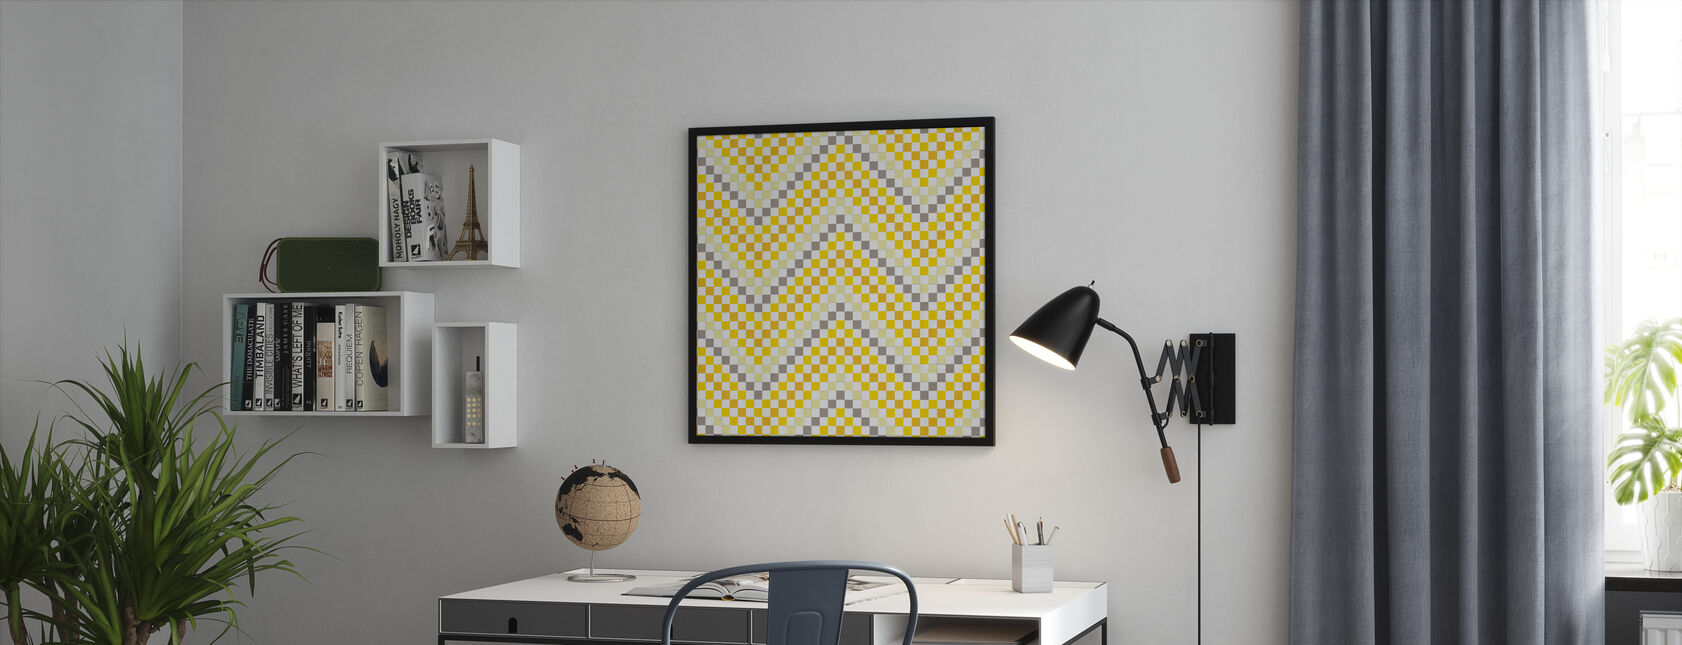 Going Geometric 4 - Framed print - Office